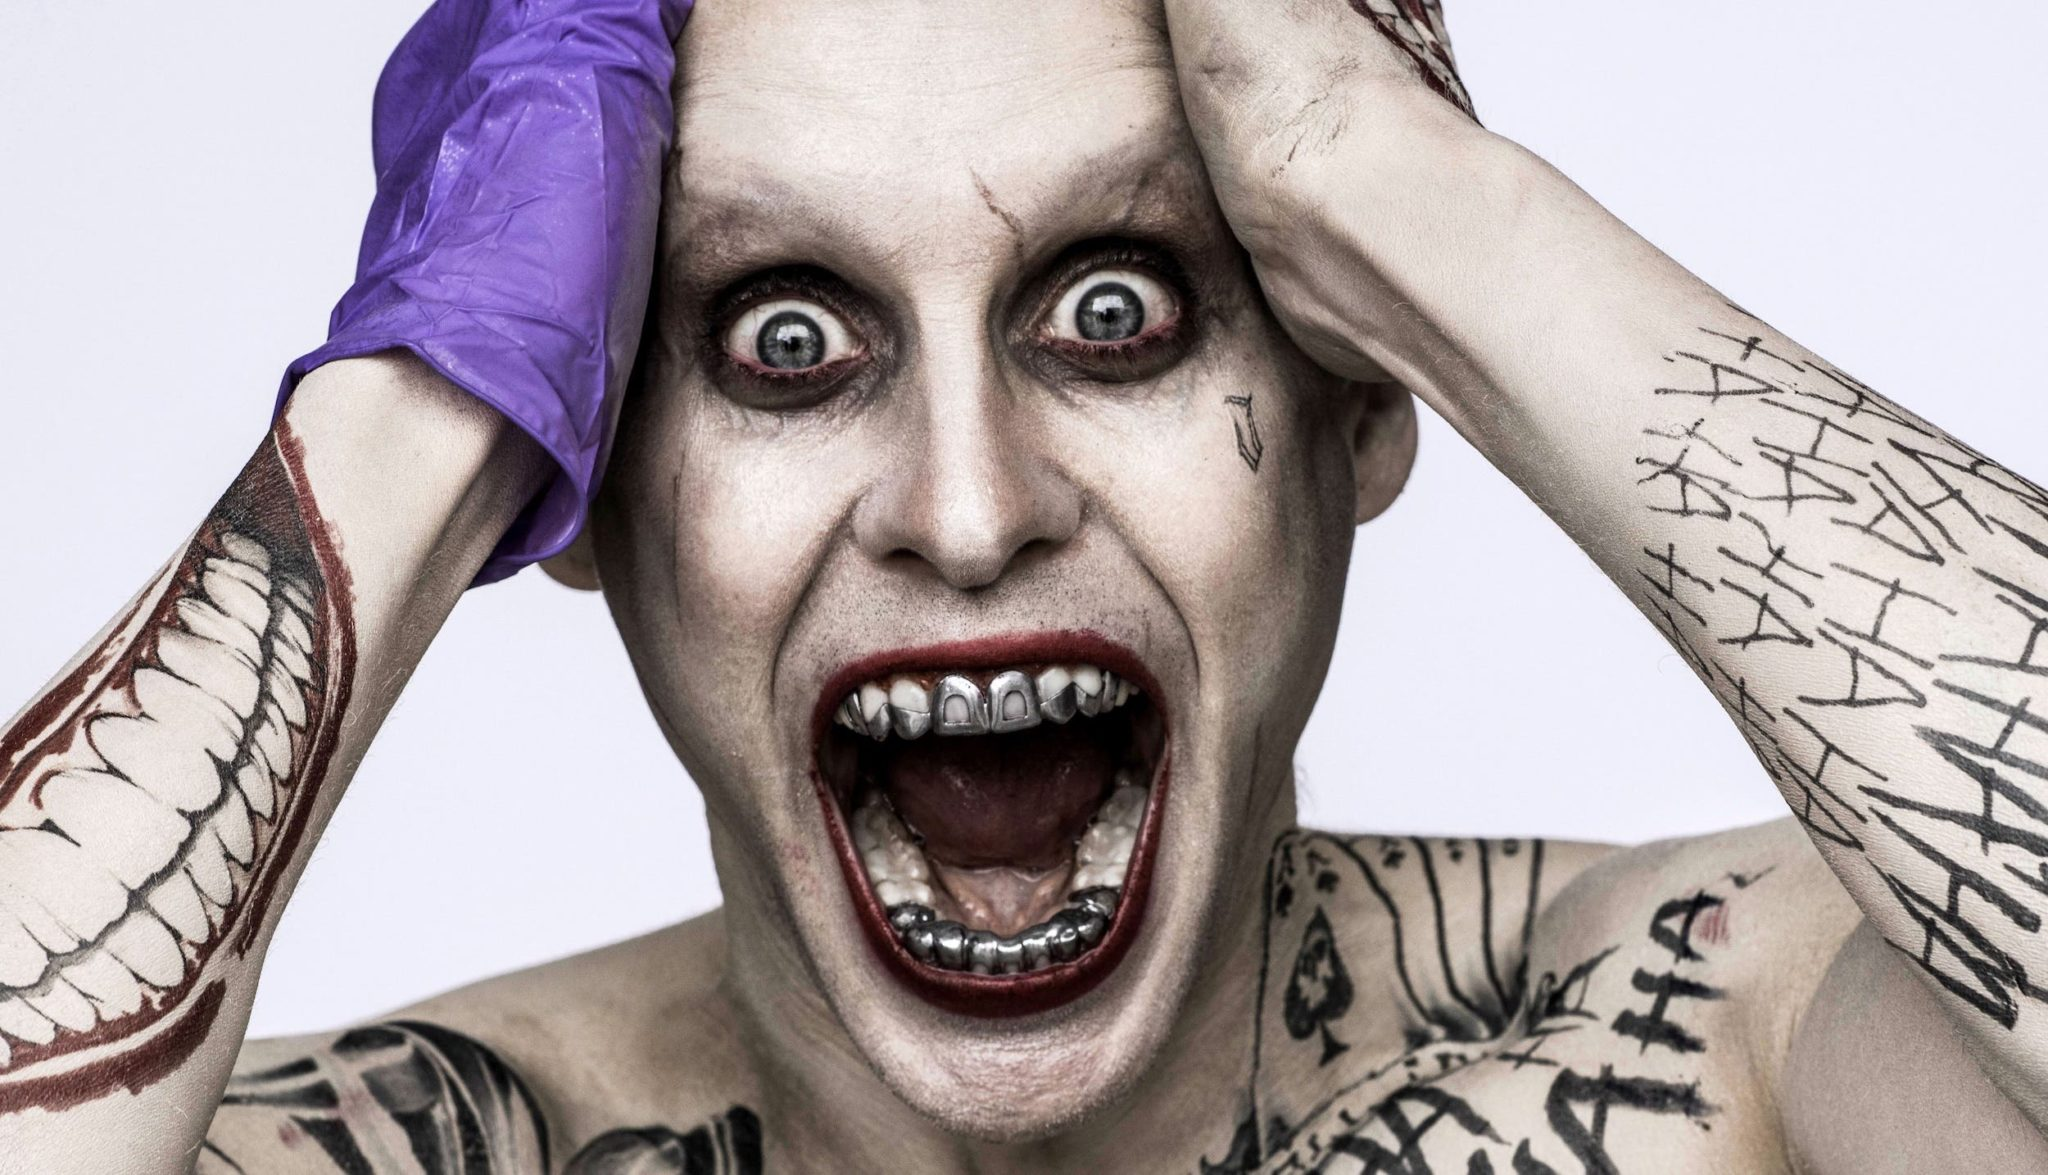 El Joker de Jared Leto estará en el Snyder Cut de Justice League de HBO Max